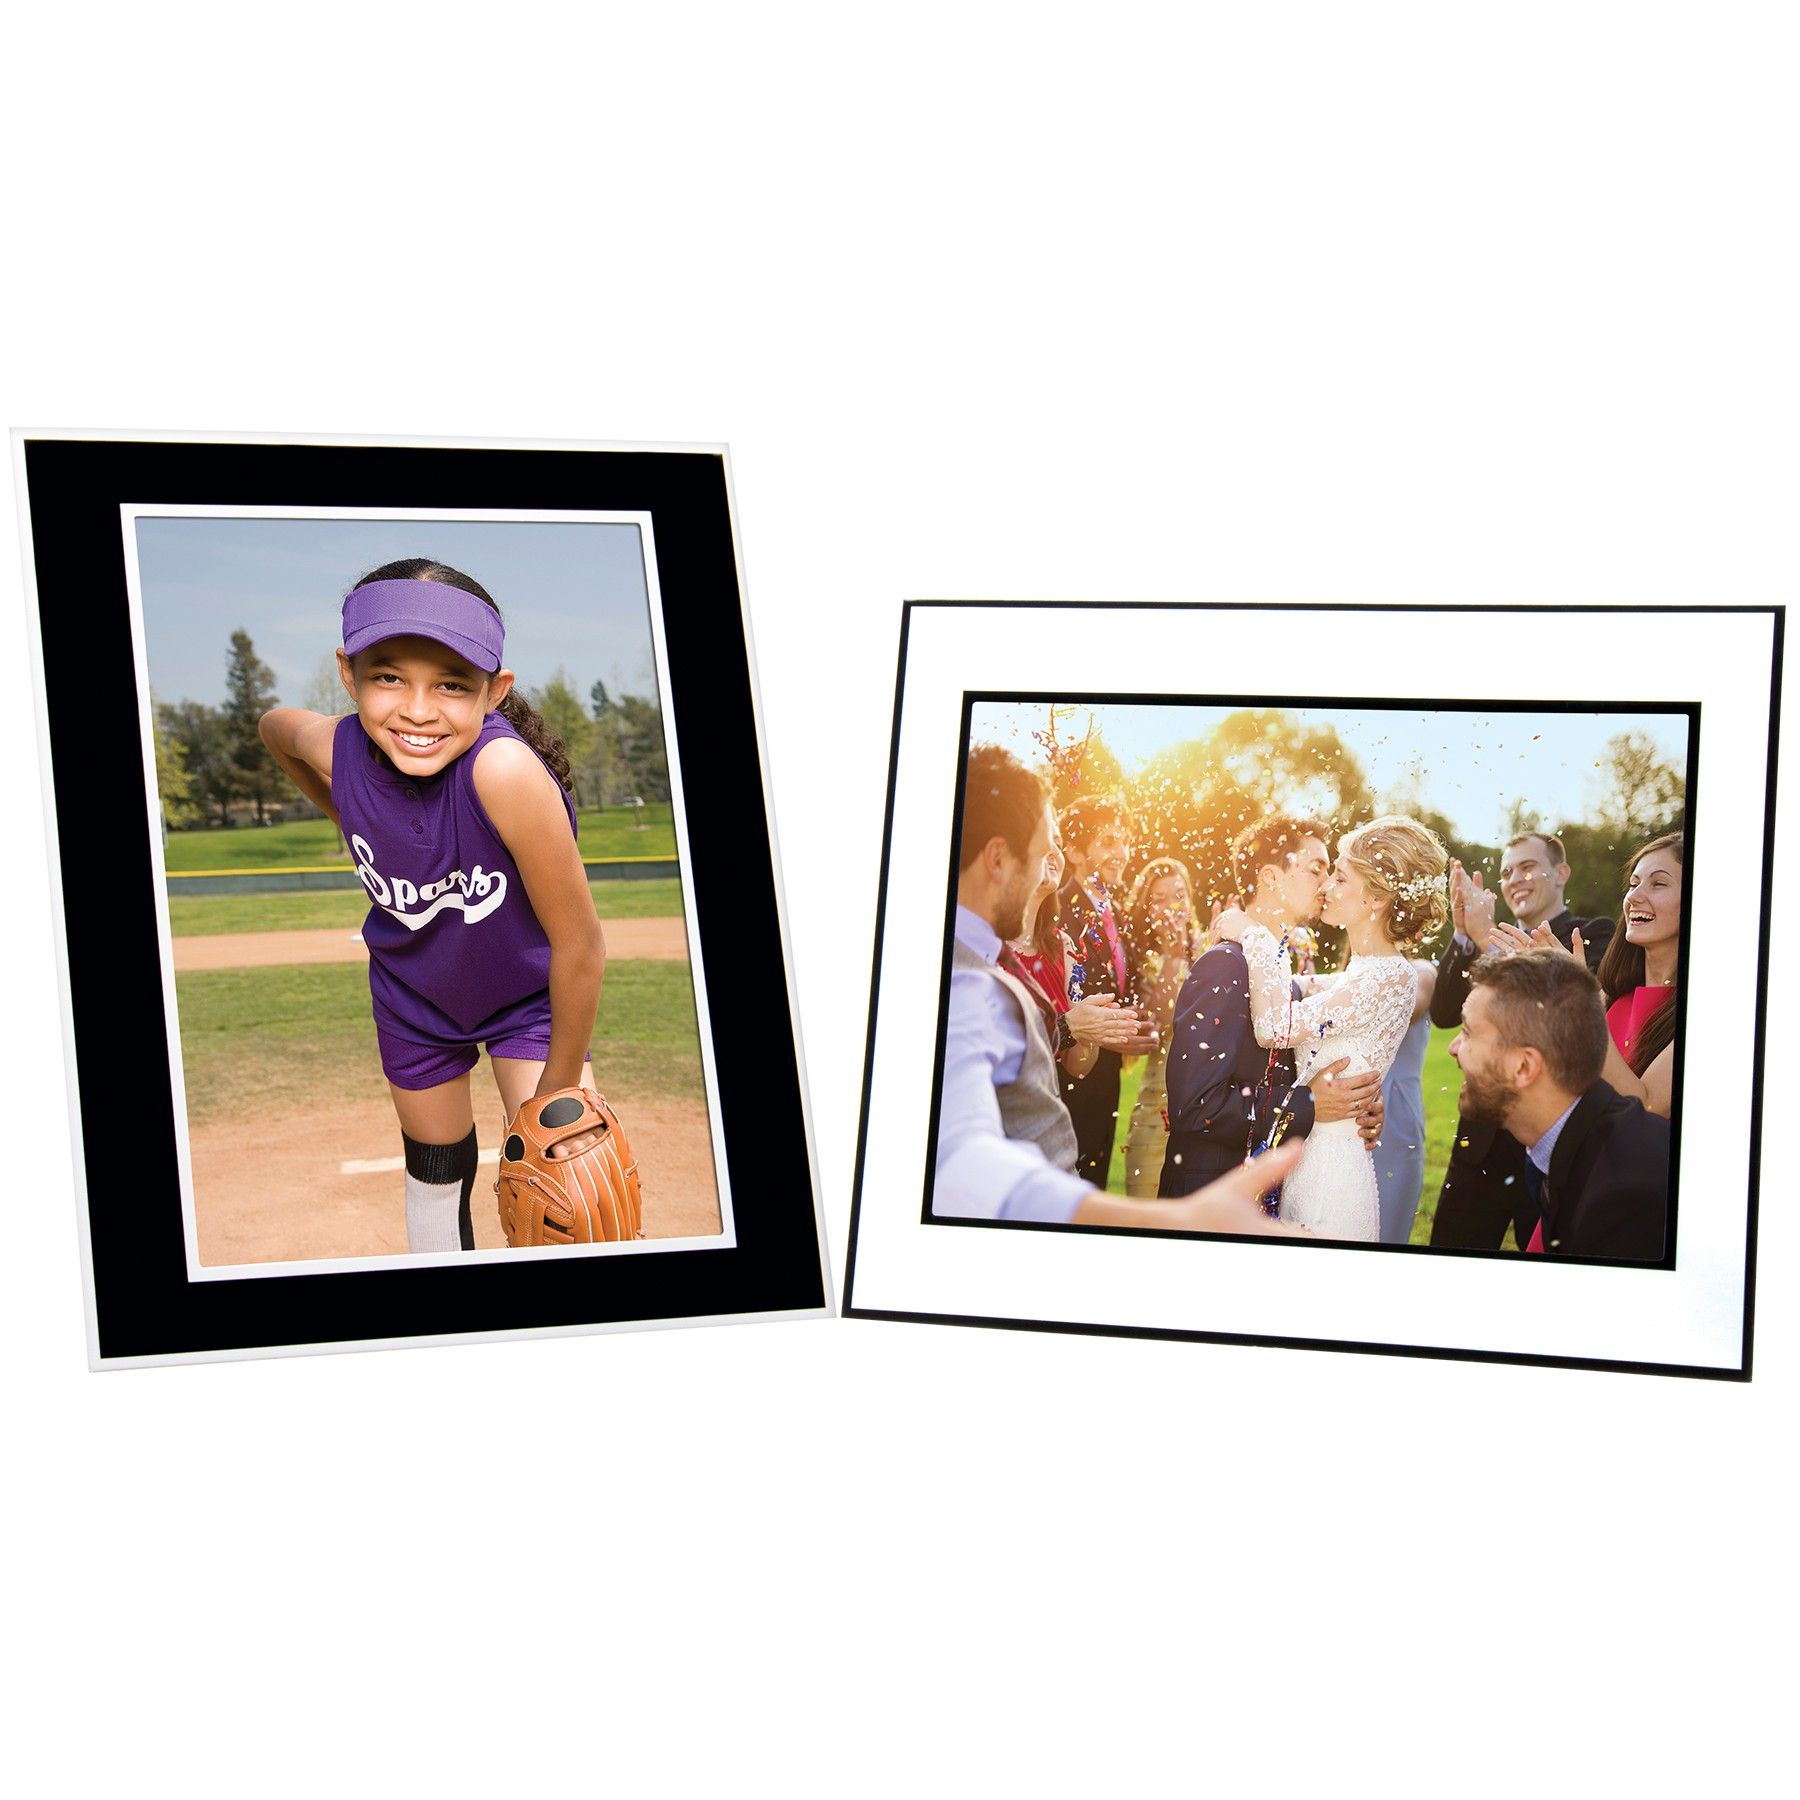 Wholesale 6x8 cardboard picture frame for special event photographers